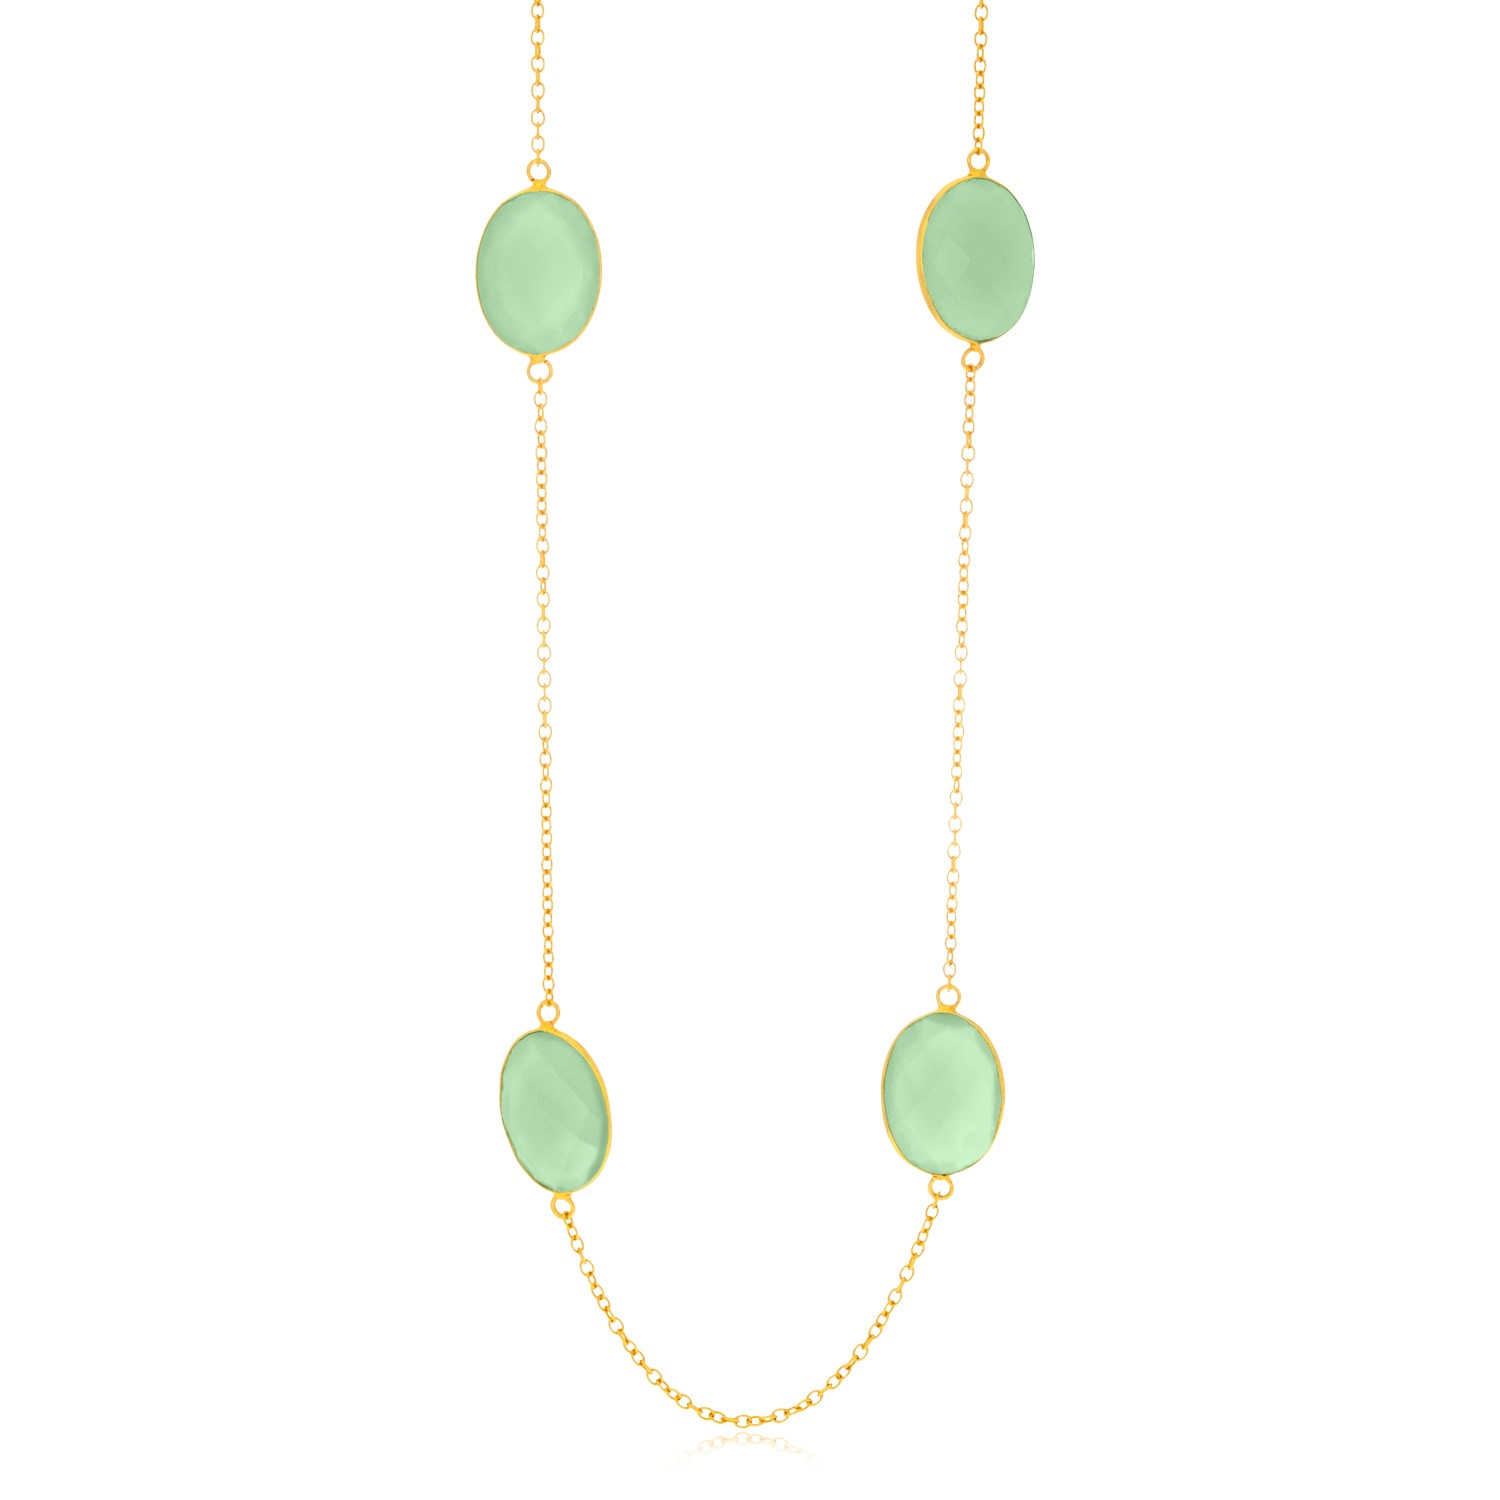 Sterling Silver Yellow Gold Plated Oval Aqua Chalcedony Station Chain Necklace by